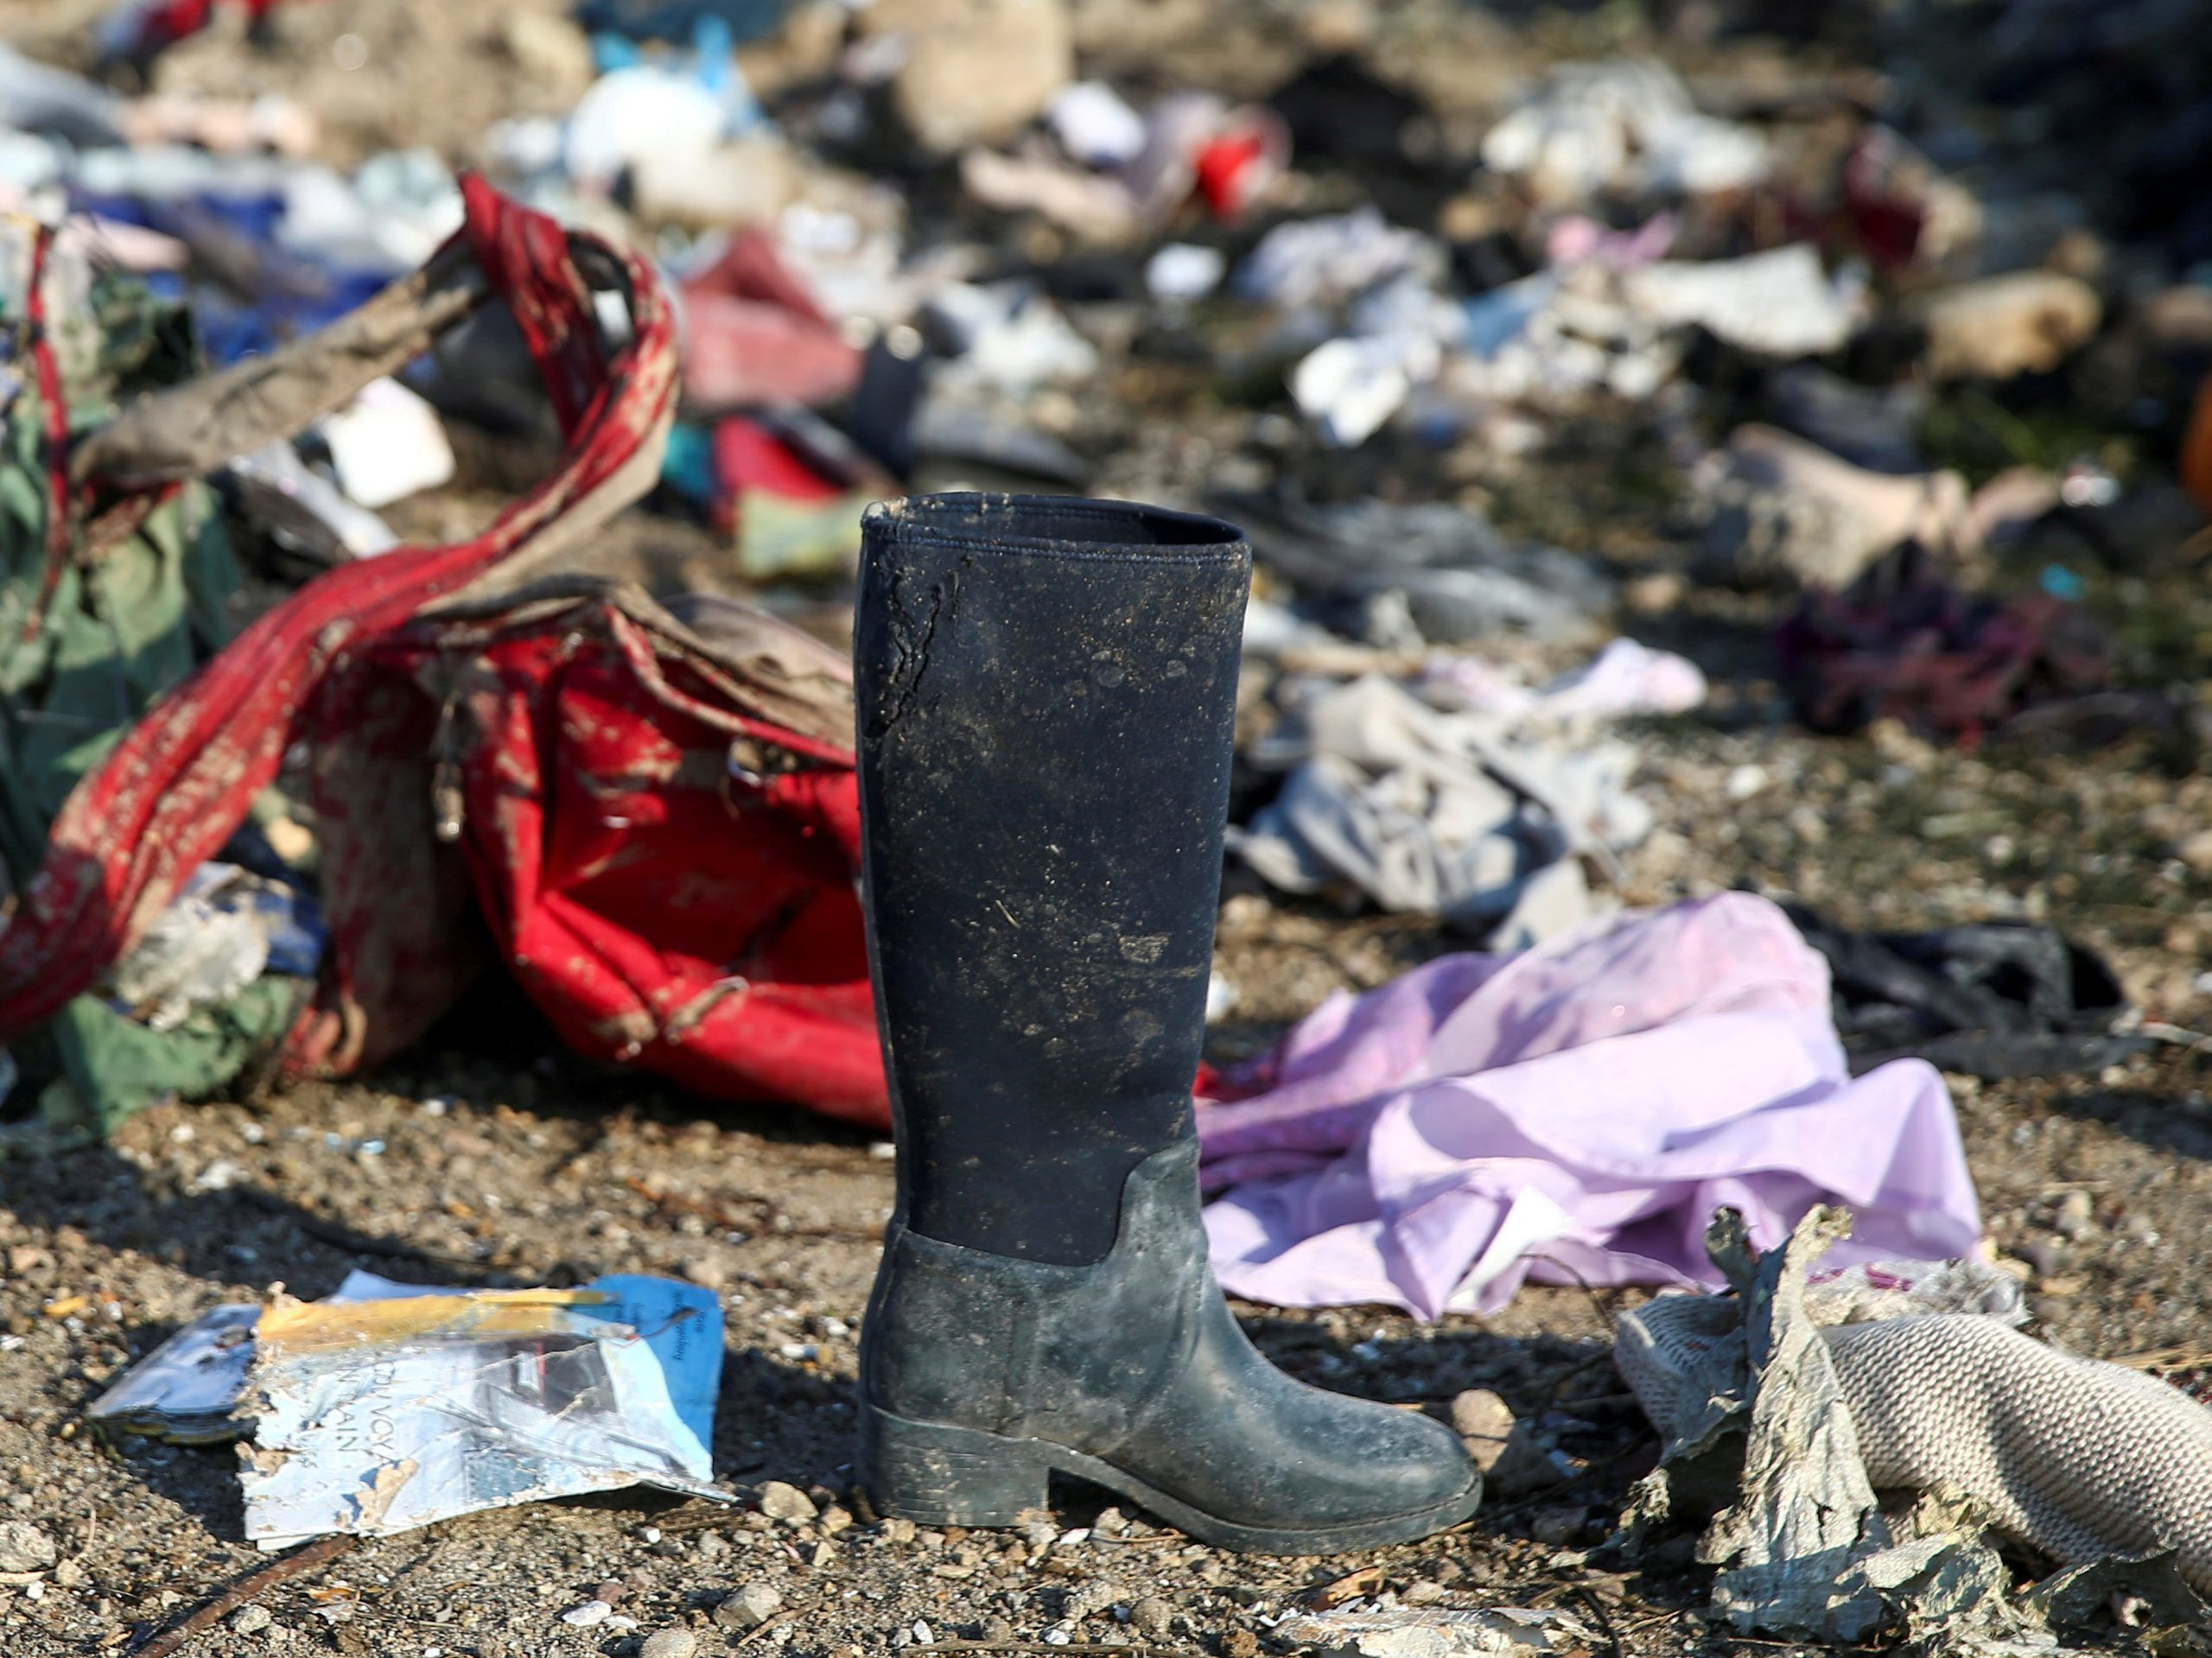 FILE PHOTO: Passengers' belongings are pictured at the site where the Ukraine International Airlines plane crashed after take-off from Iran's Imam Khomeini airport, on the outskirts of Tehran, Iran January 8, 2020. REUTERS./